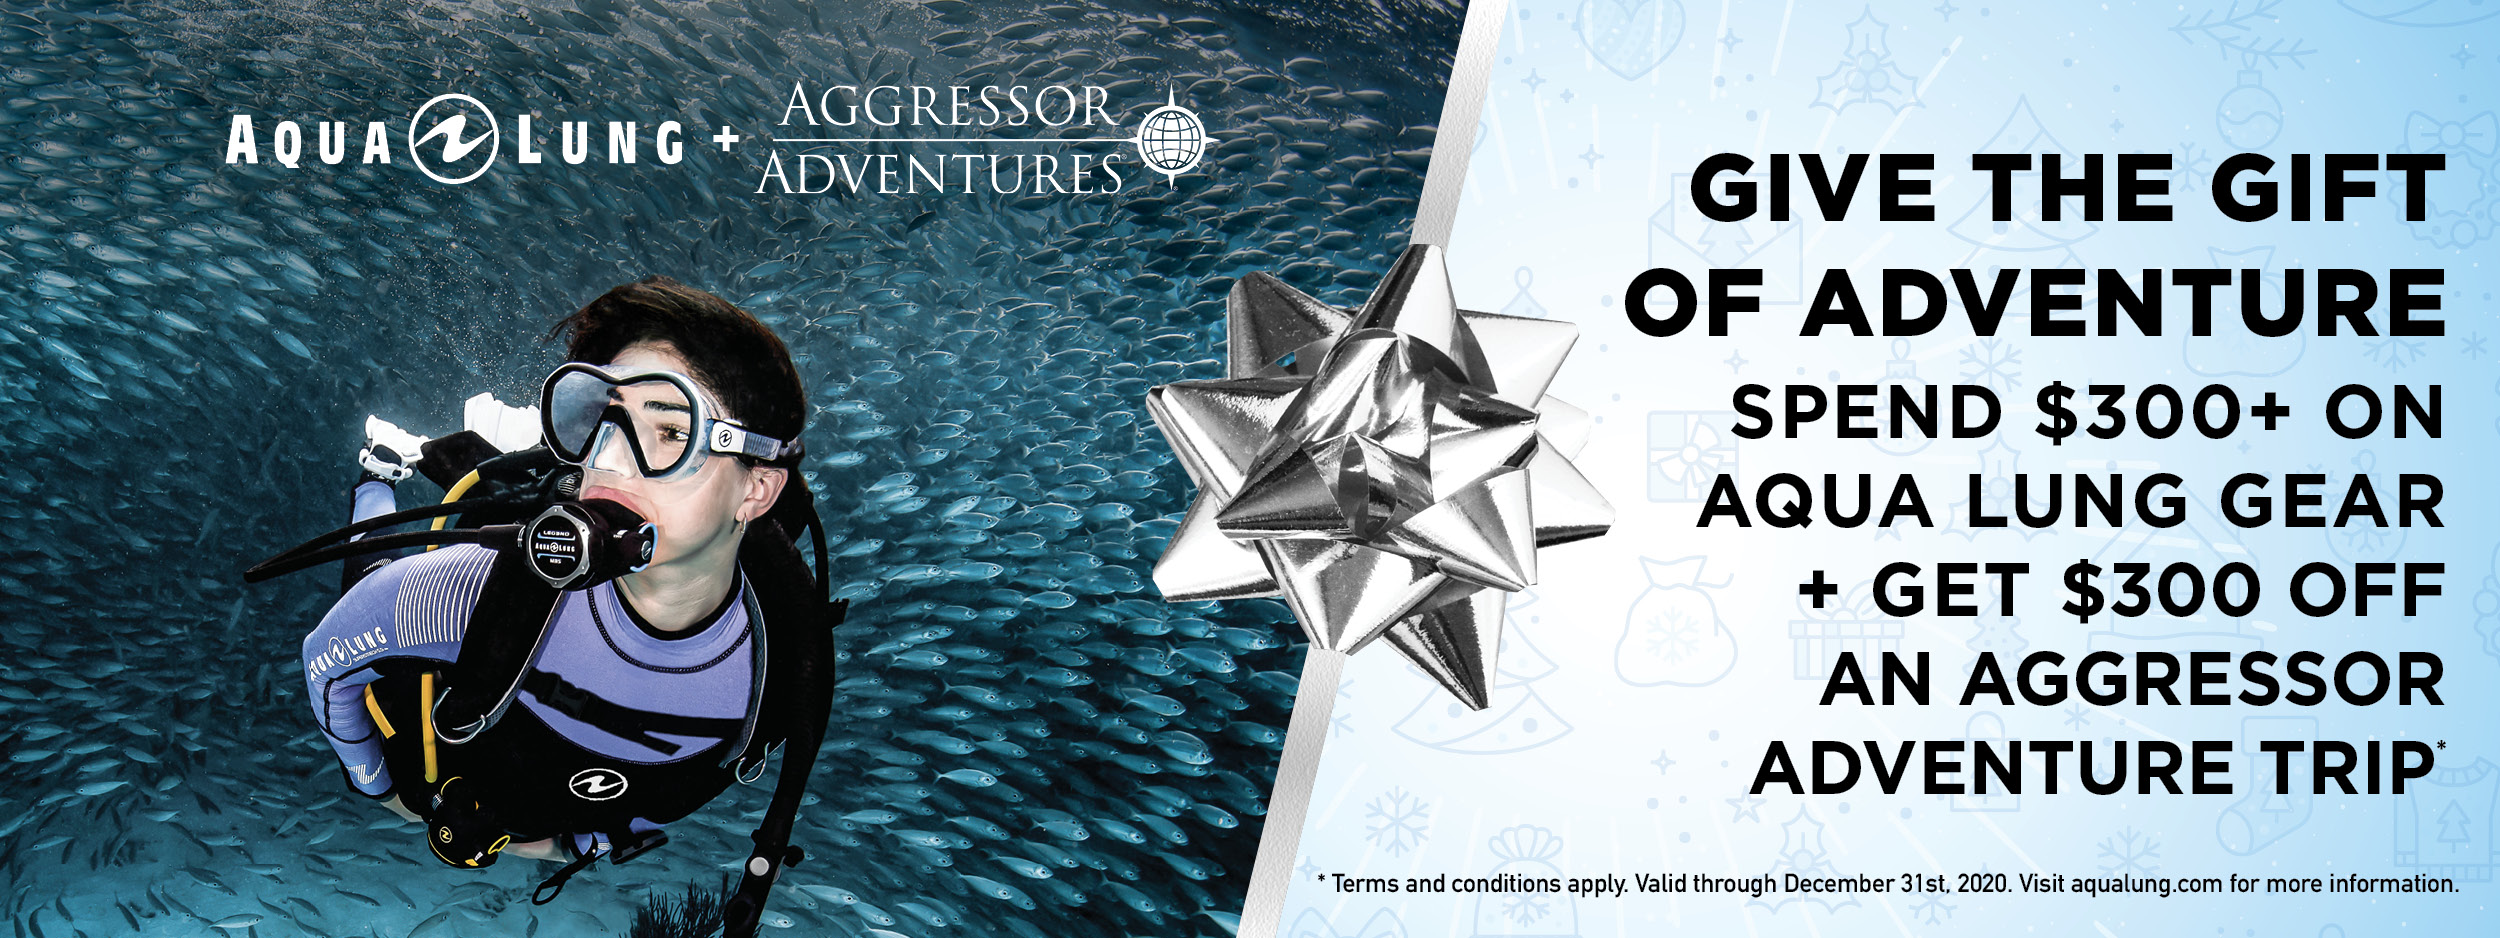 Spend $300+ on Aqua Lung gear and get a $300 voucher with Aggressor